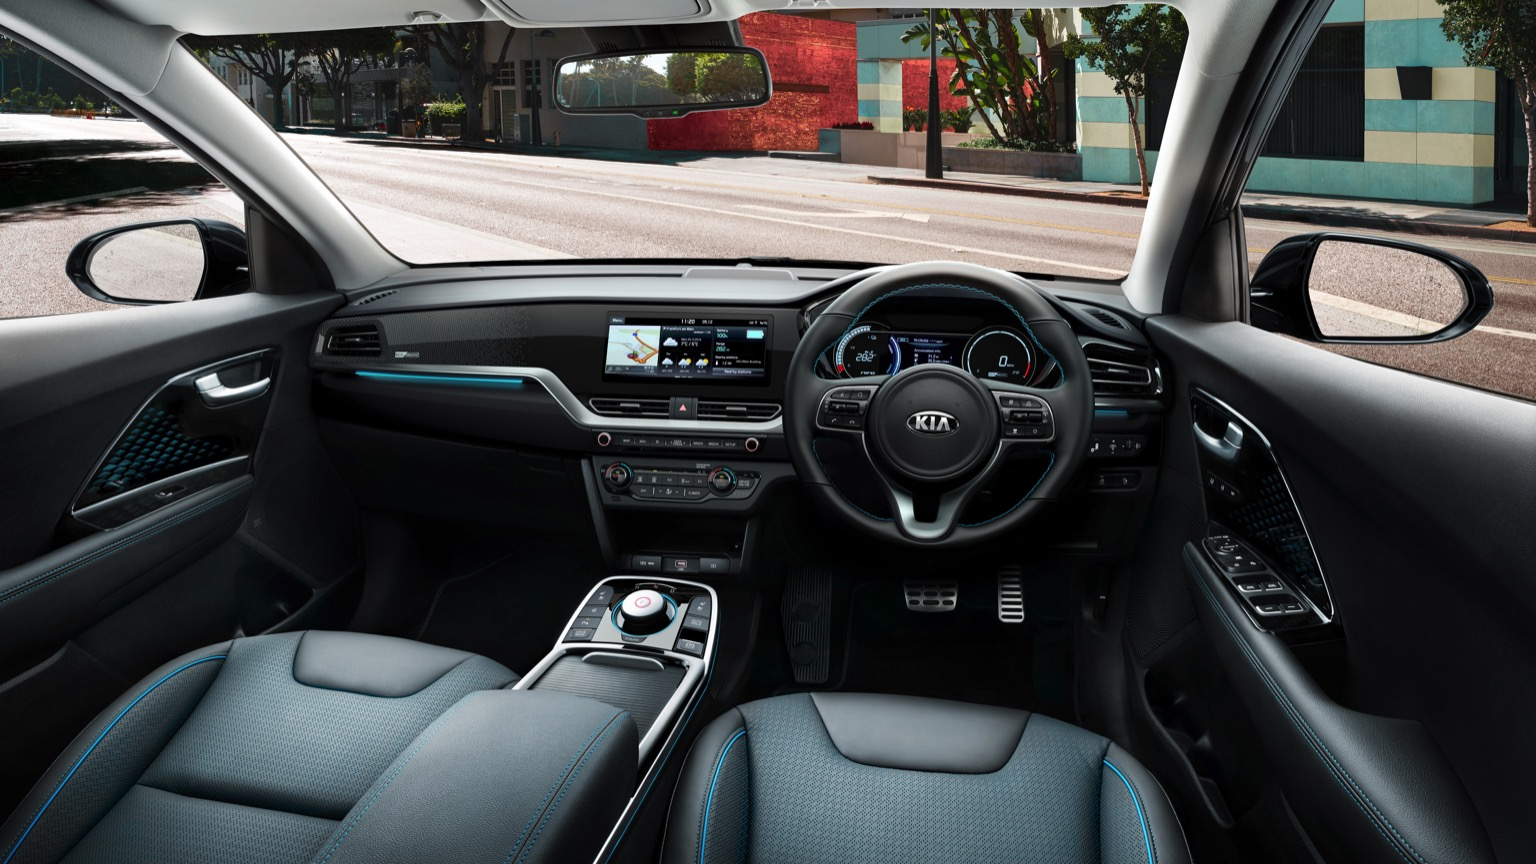 inside the Kia E-niro ev charger